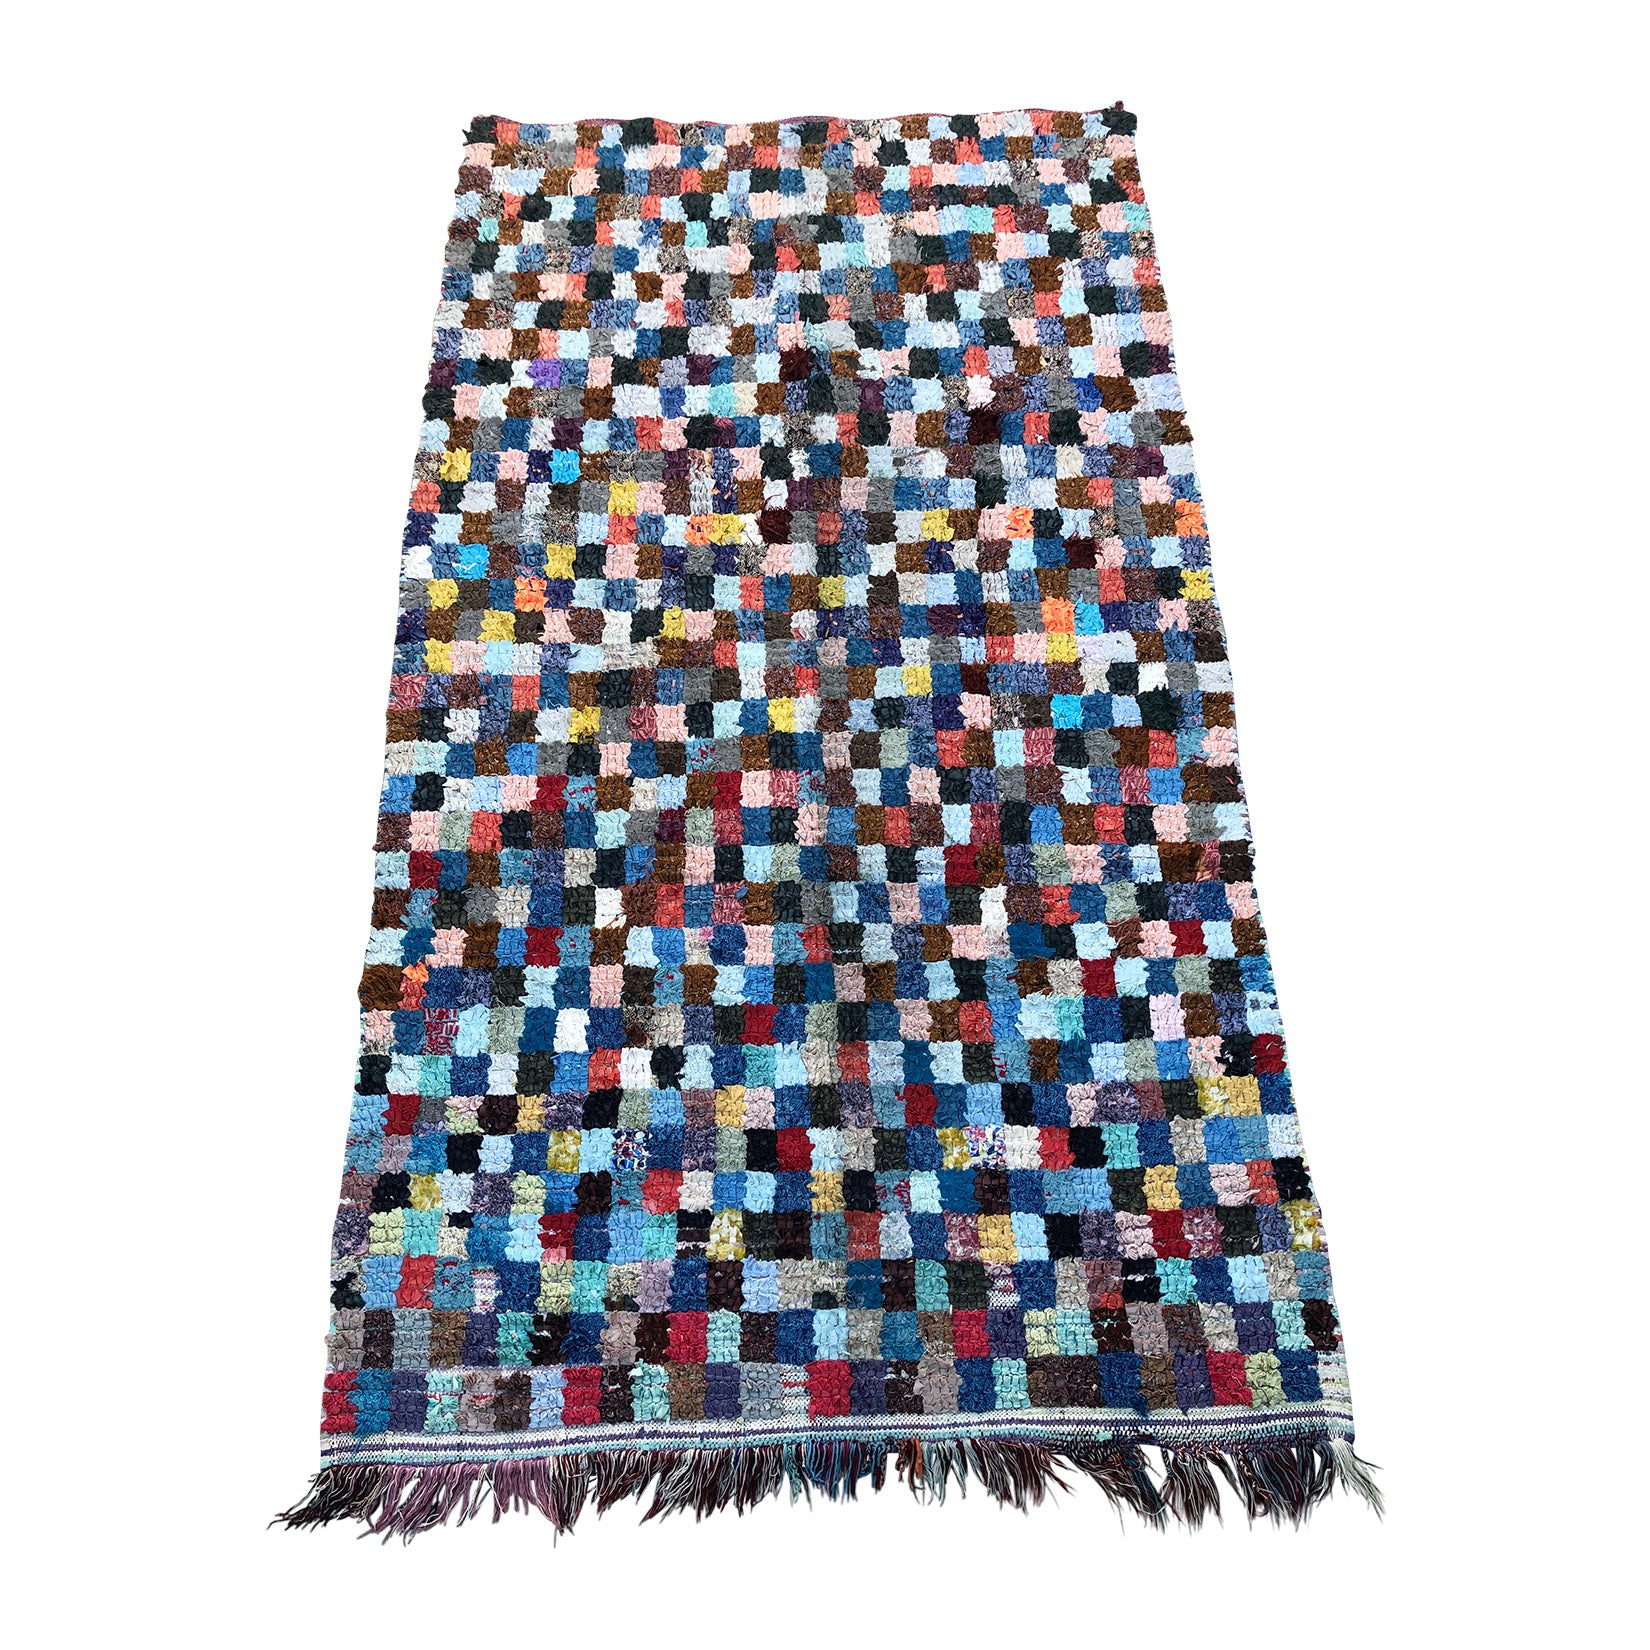 ABDOU - Moroccan boucherouite rag rug with checkerboard pattern - Kantara | Moroccan Rugs